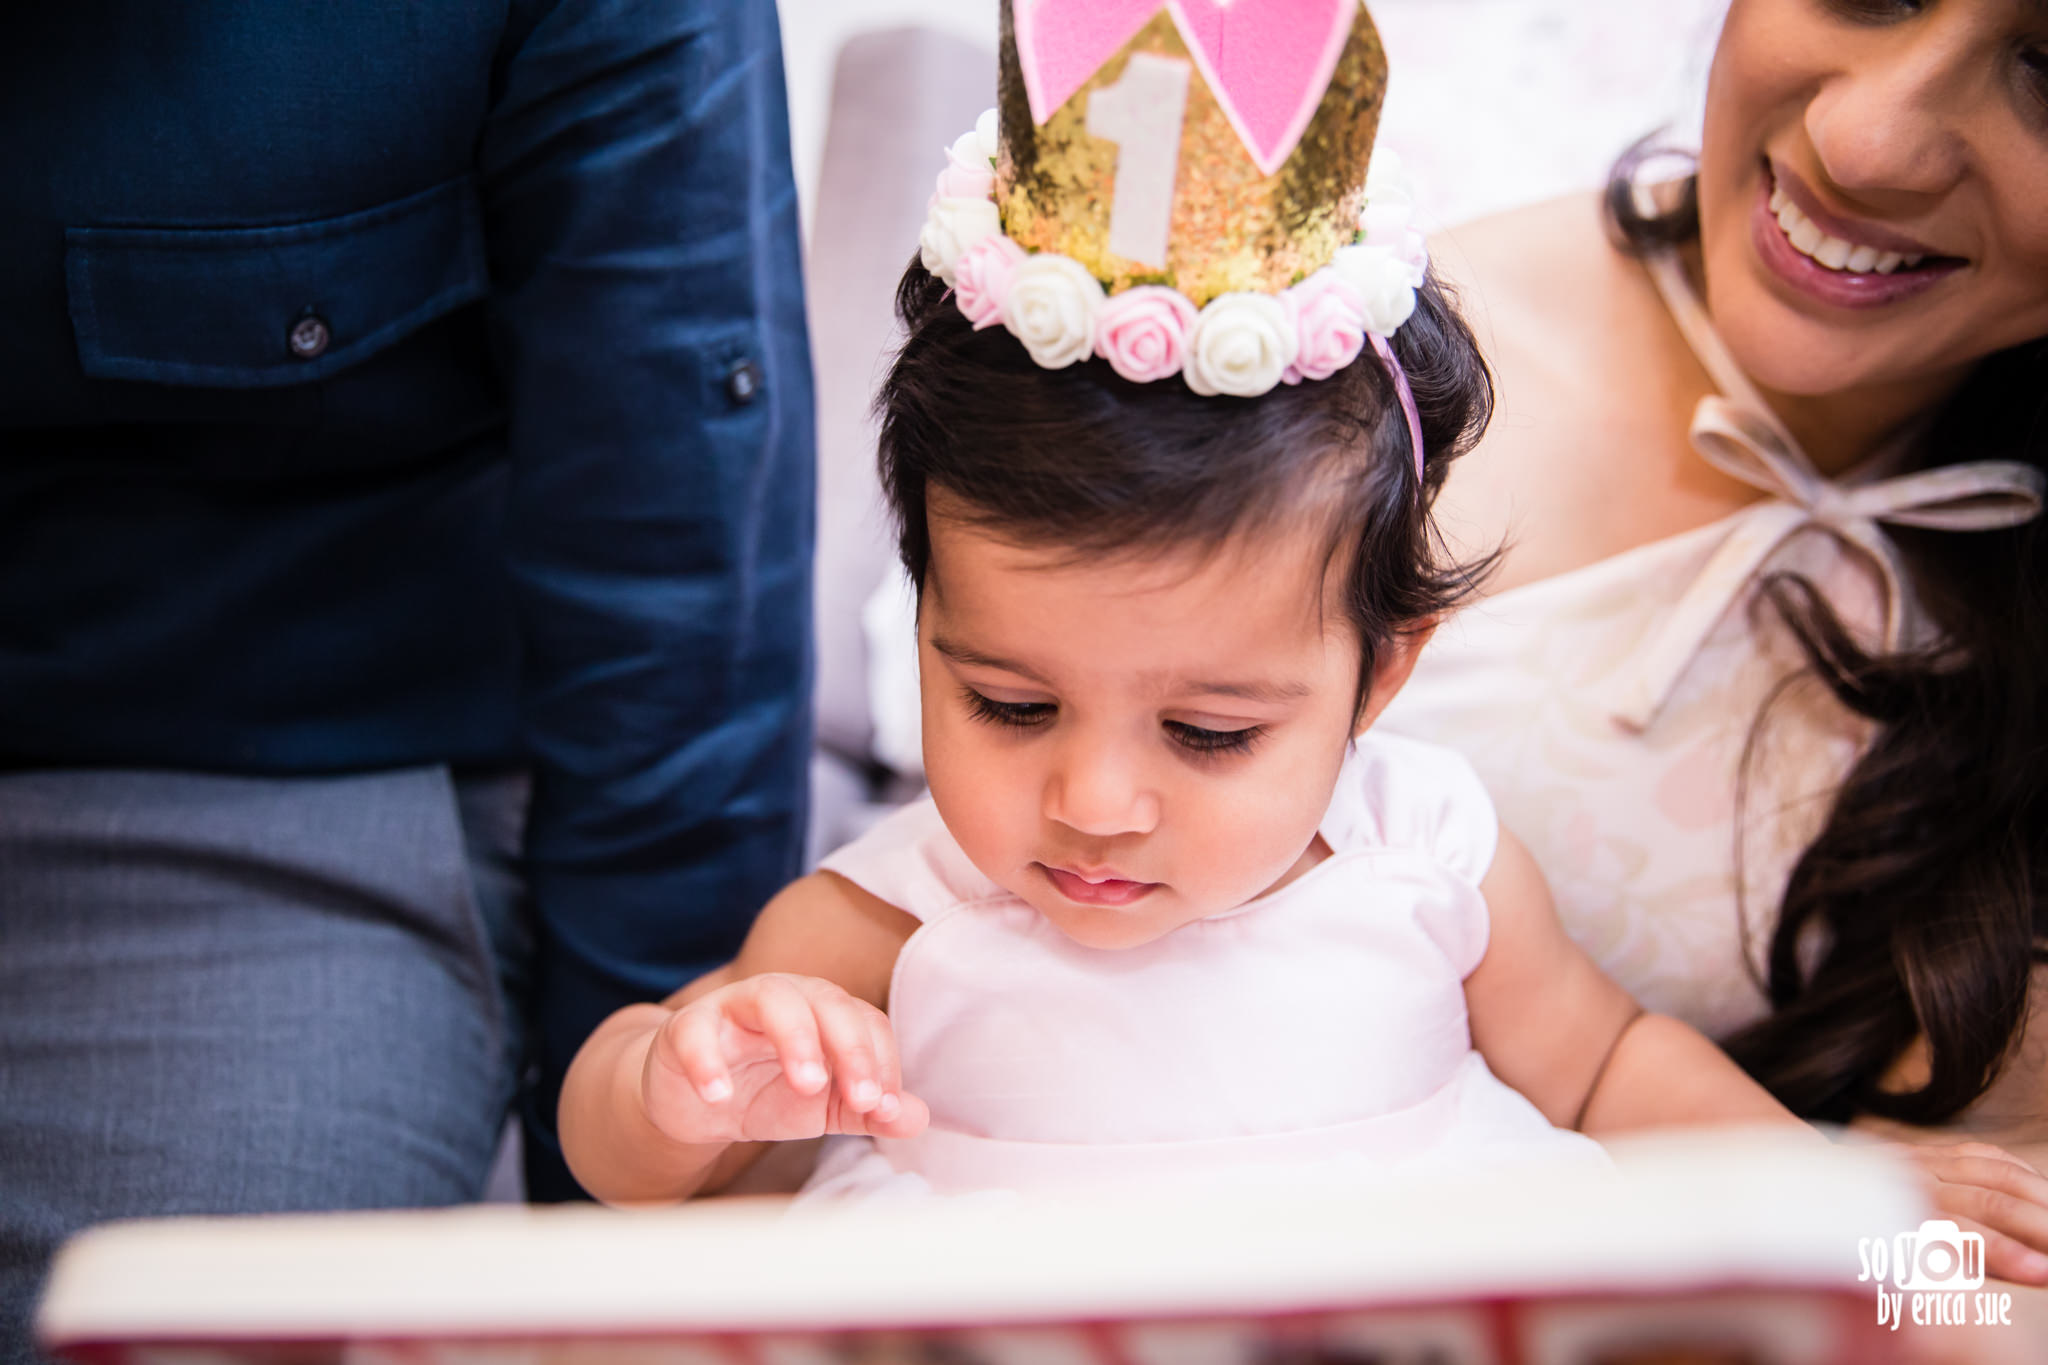 so-you-by-erica-sue-first-birthday-photographer-pembroke-pines-5786.jpg